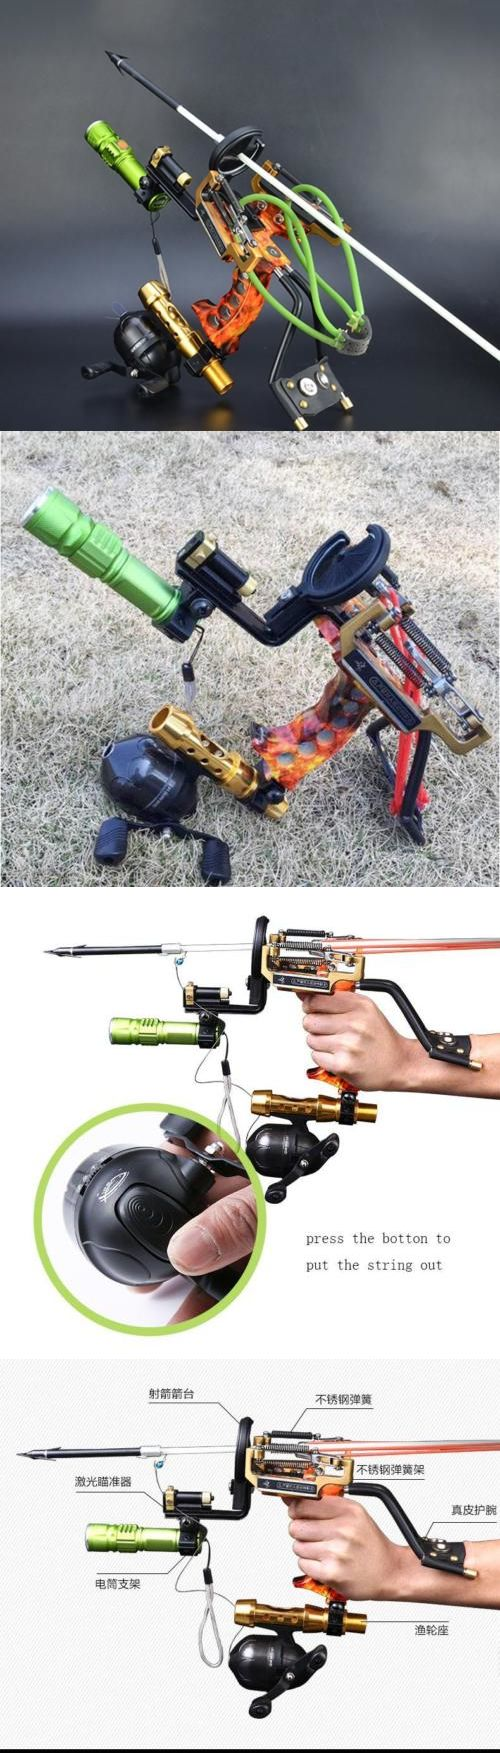 Slingshots 117141: Archery Arrow Rest Slingbow Fishing Reel Slingshot Hunting Fish Catapult Outdoor -> BUY IT NOW ONLY: $82.88 on eBay!